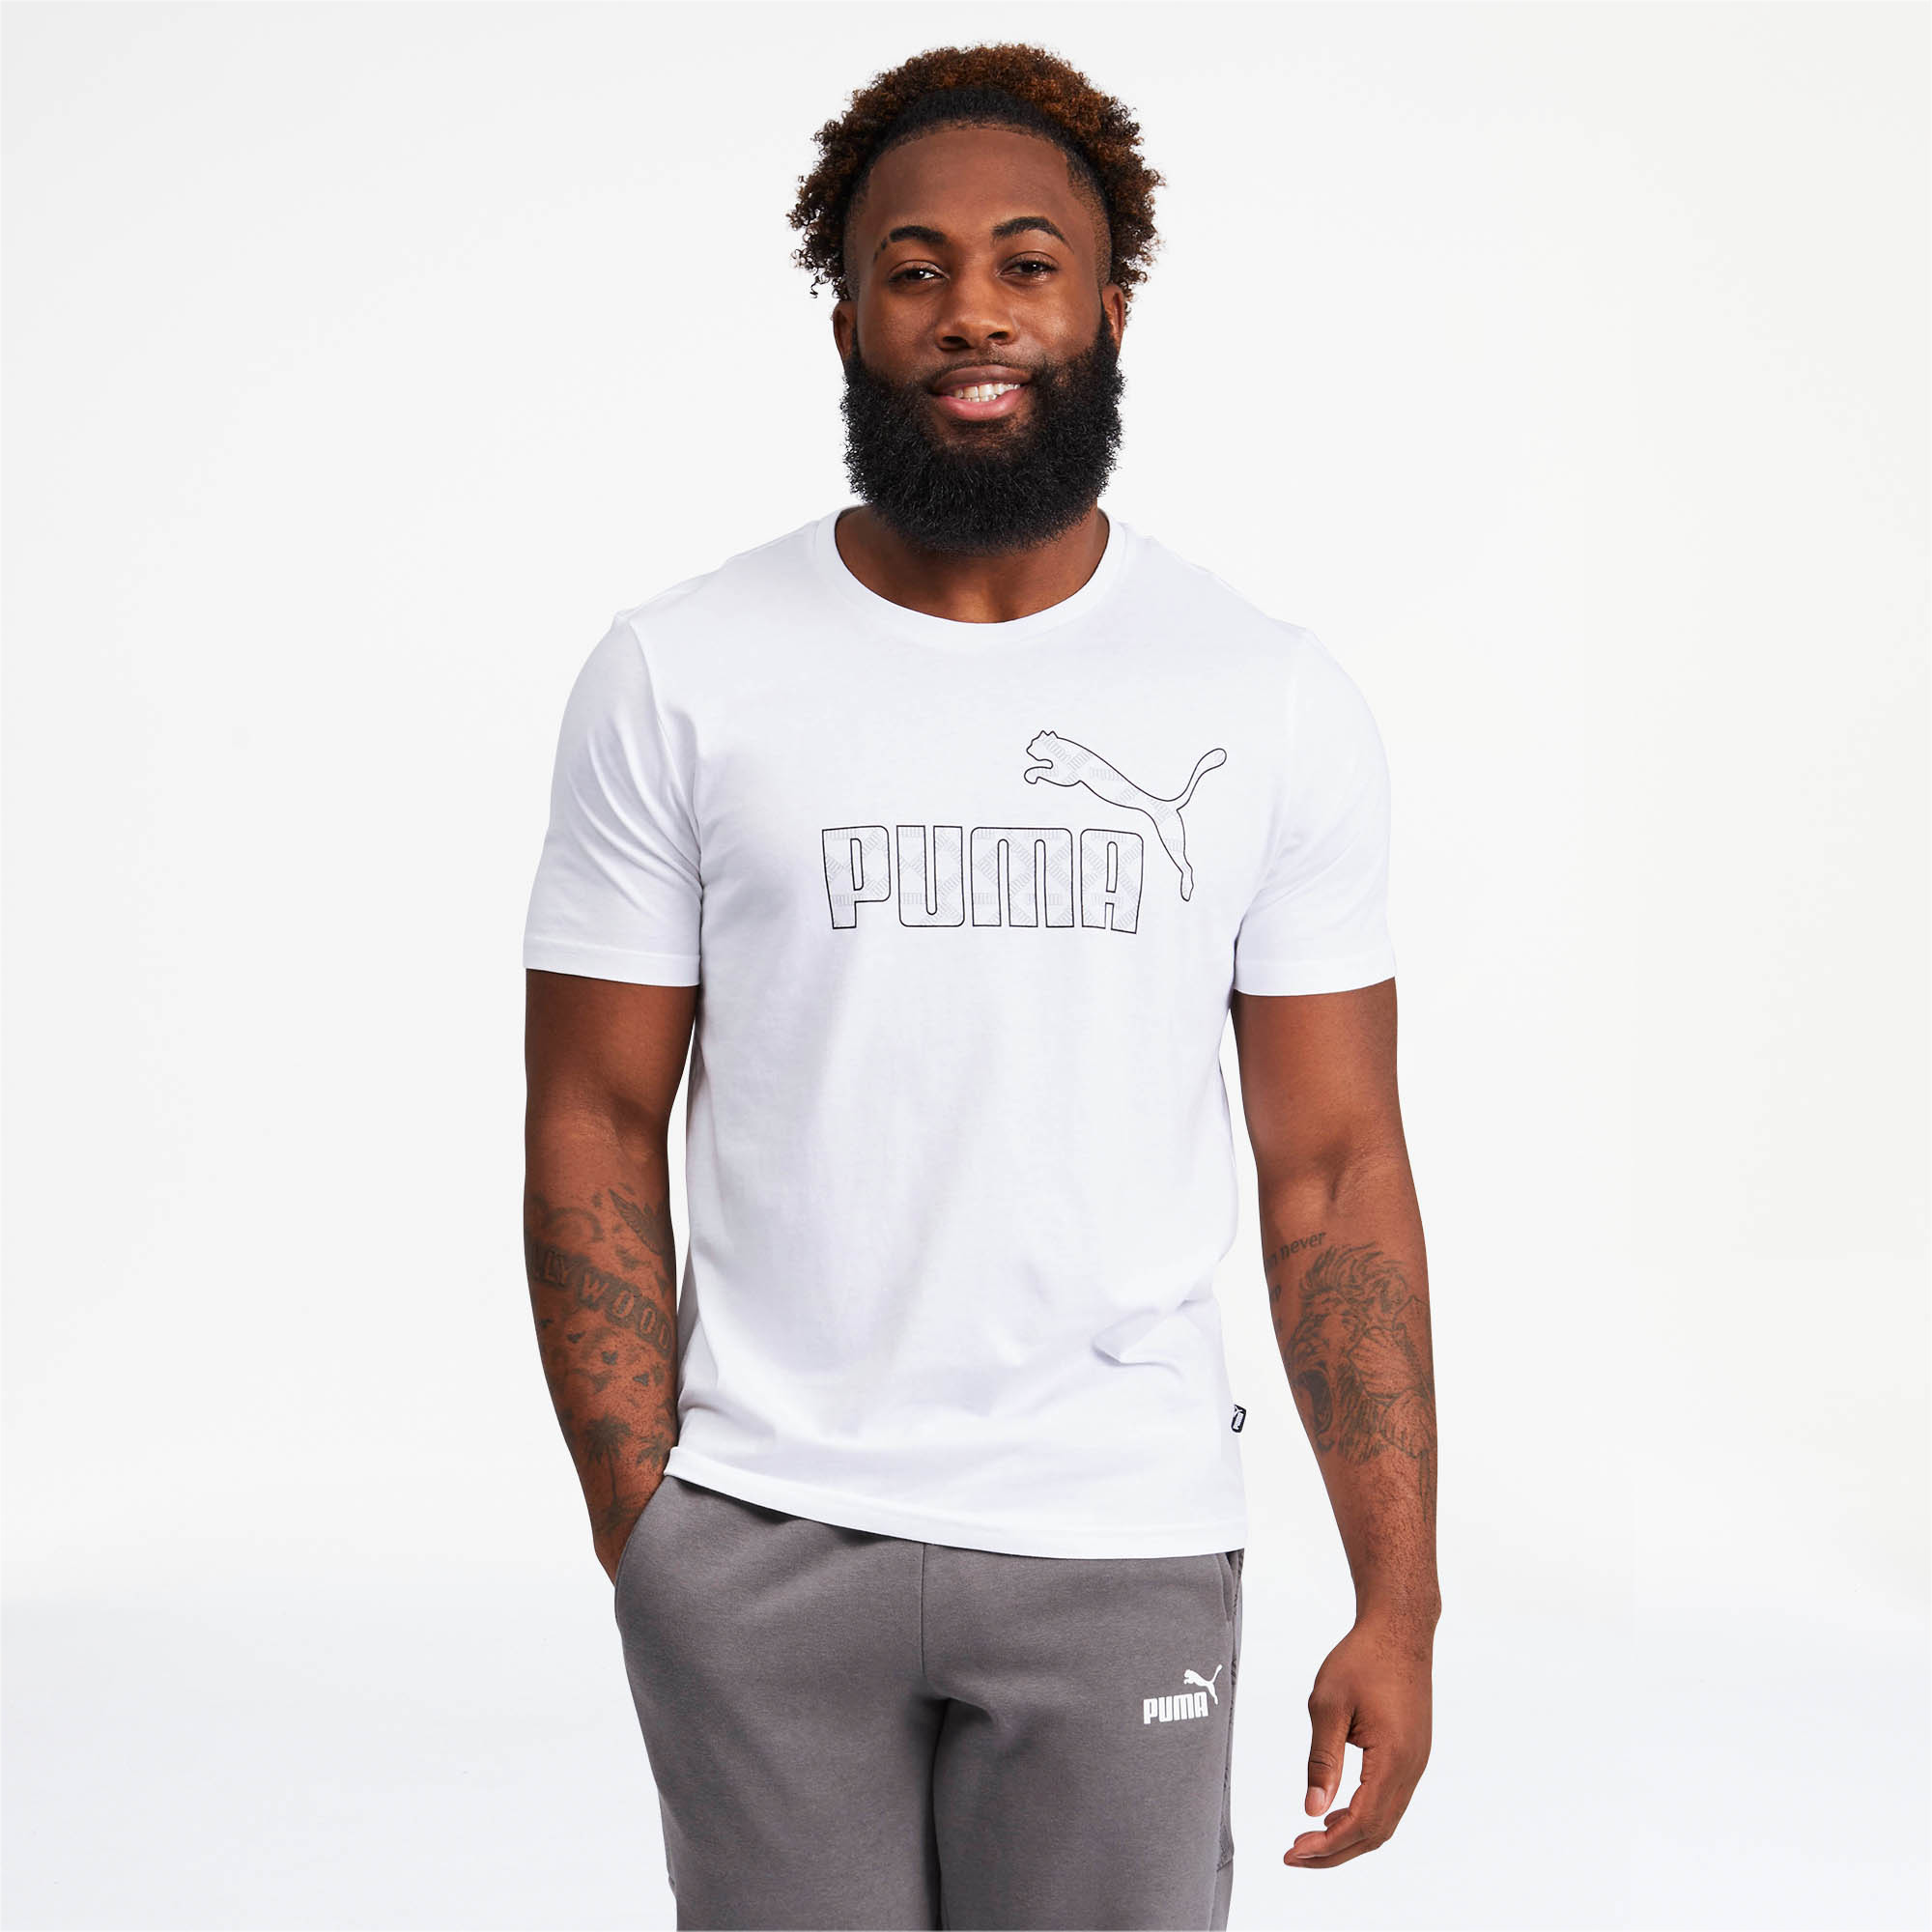 PUMA-Logo-AOP-Pack-Men-039-s-Graphic-Tee-Men-Tee-Basics thumbnail 9